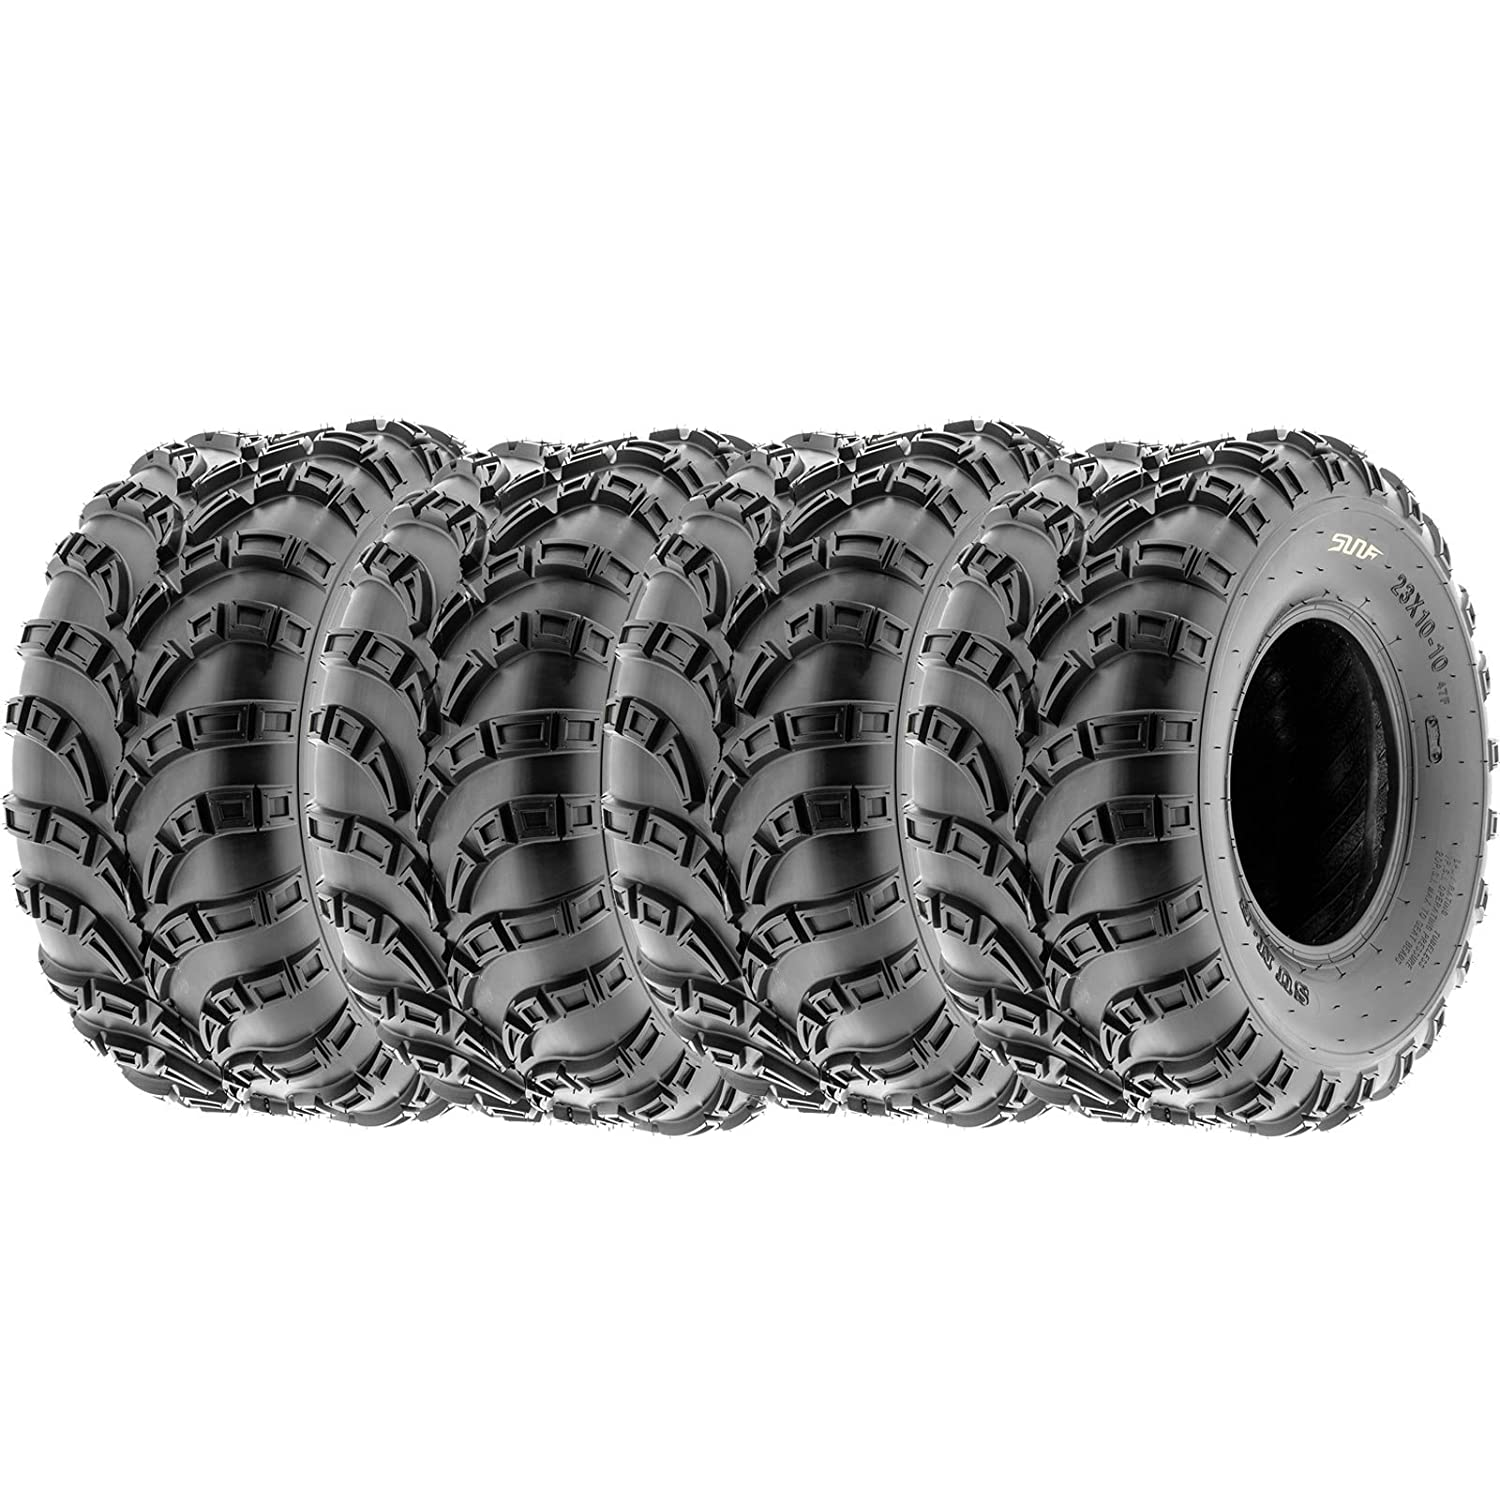 SunF Trail Race Replacement ATV UTV A/T 6 Ply Tires 23x7-10 & 22x10-10 Tubeless A028, [Set of 4] LCF1|A028|230710|221010|x4